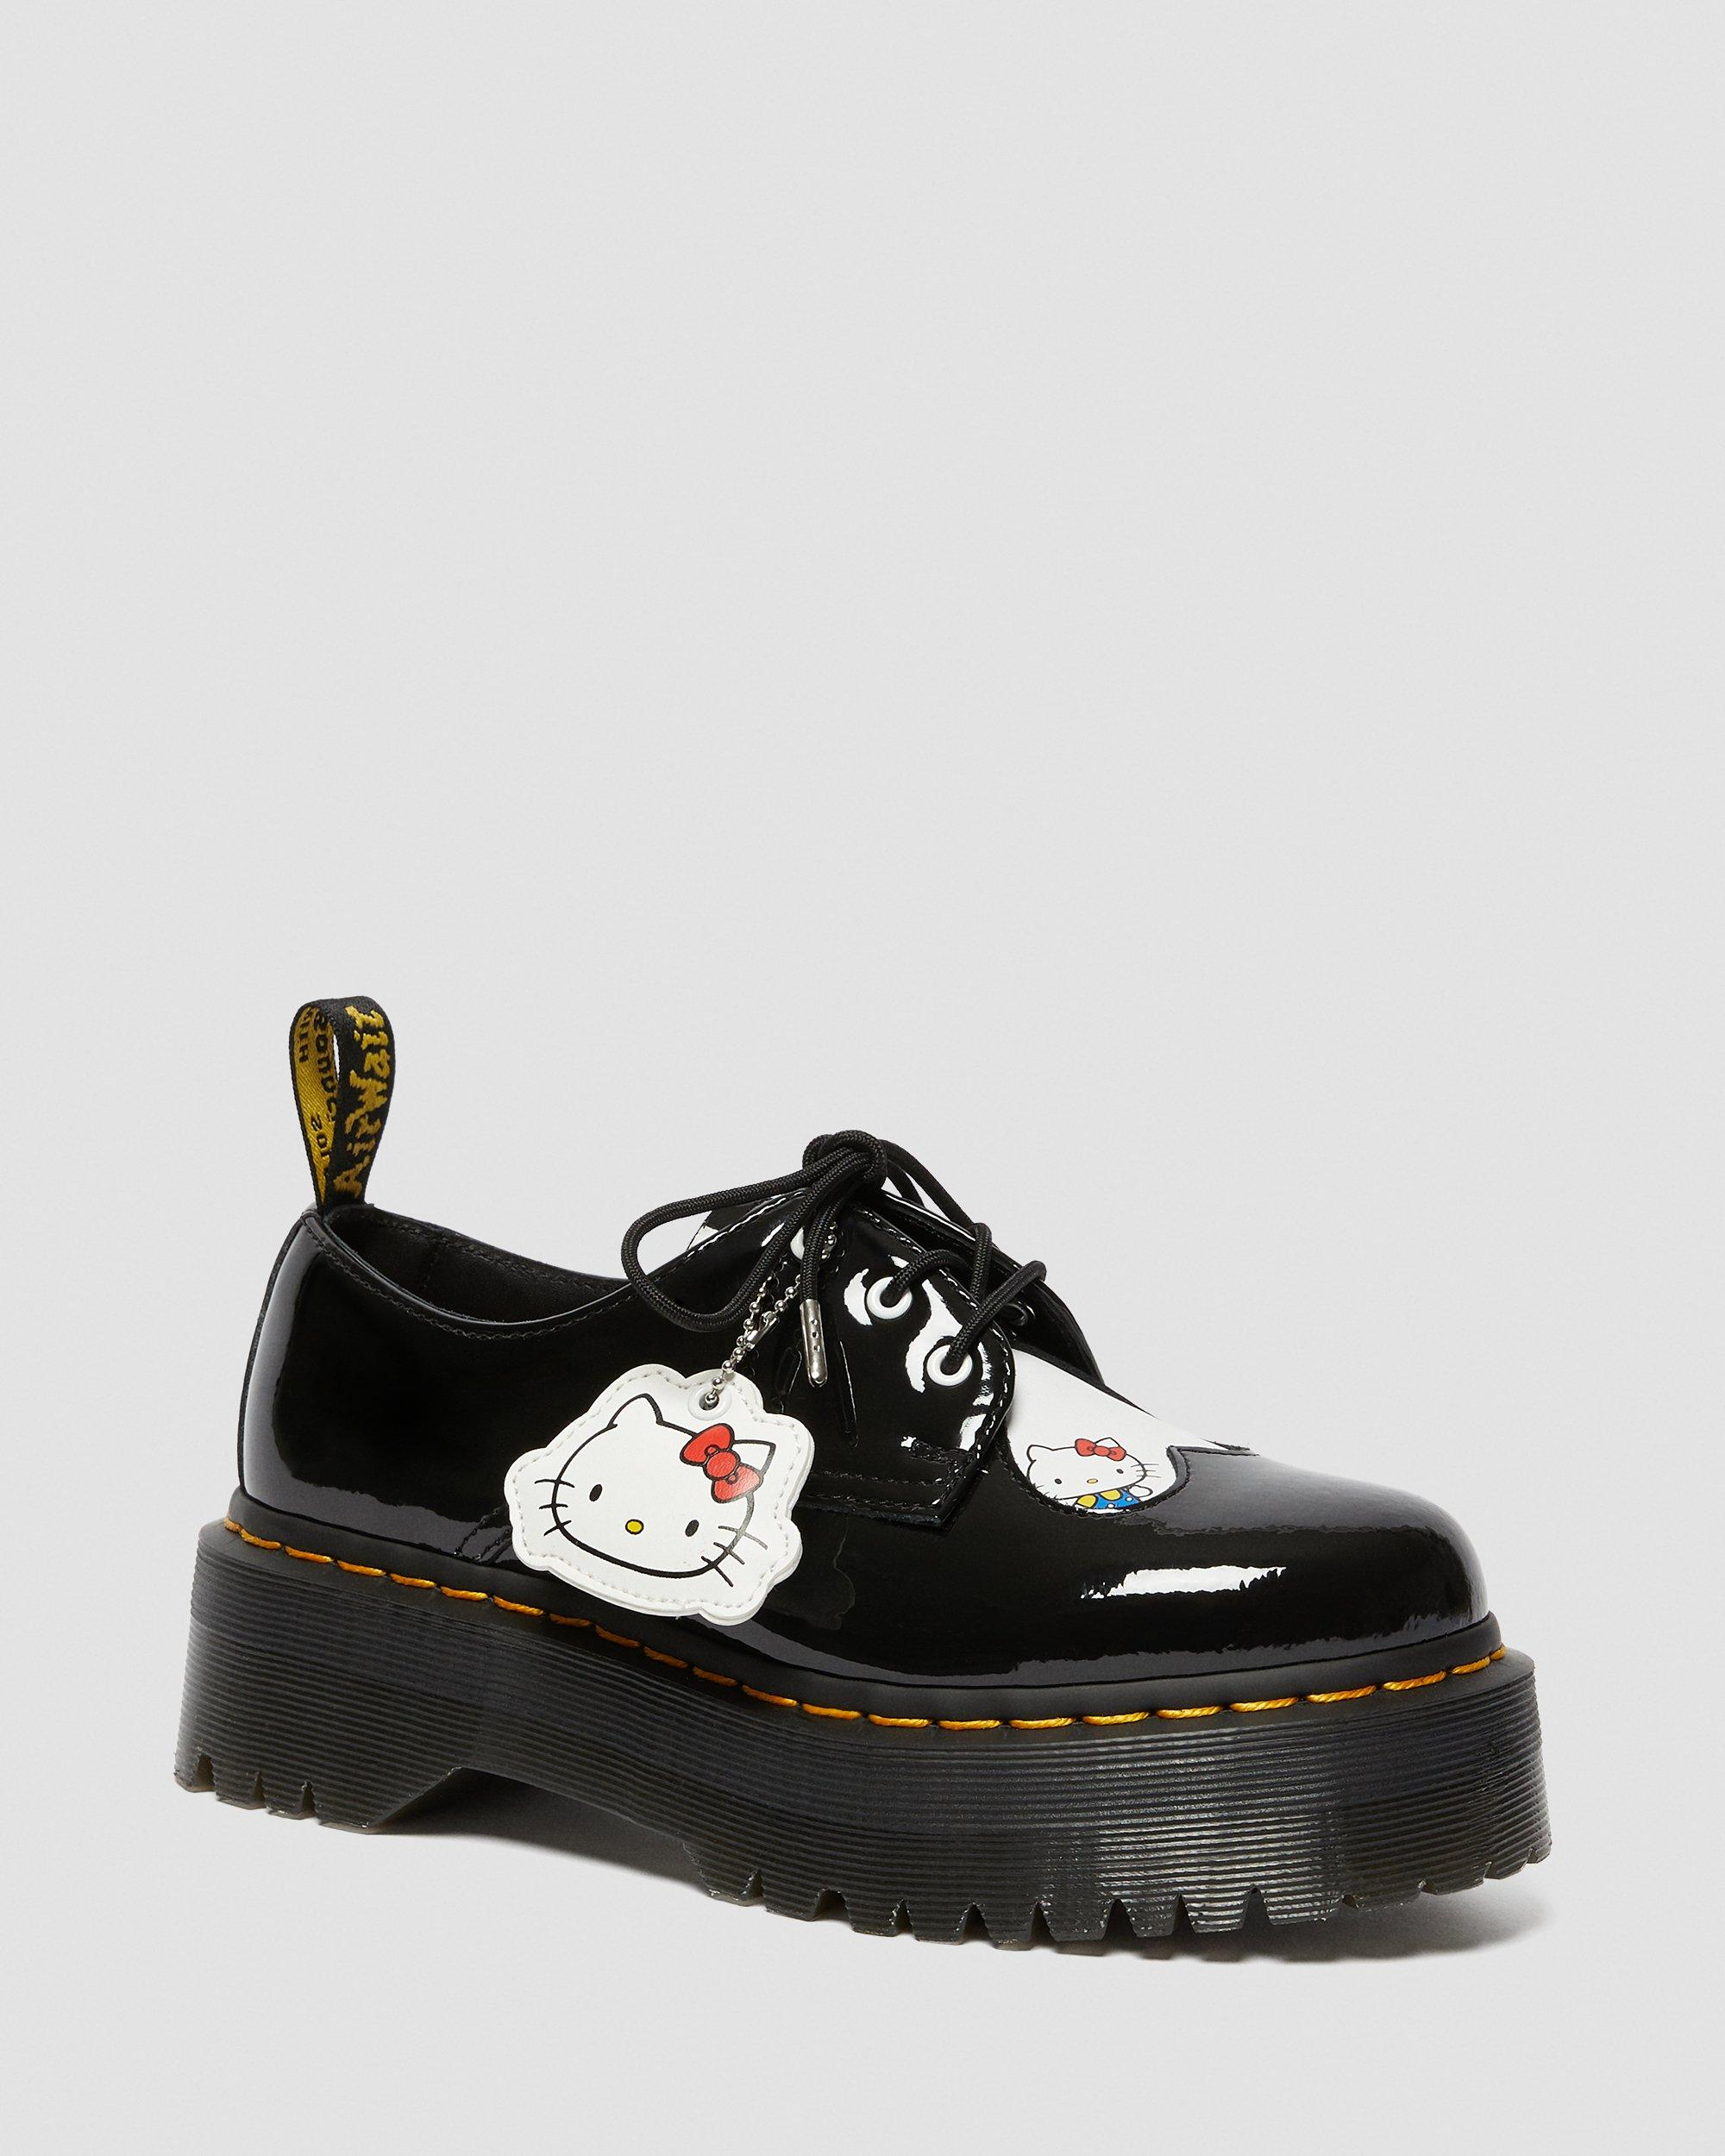 HELLO KITTY 1461 QUAD | Dr. Martens Deutschland